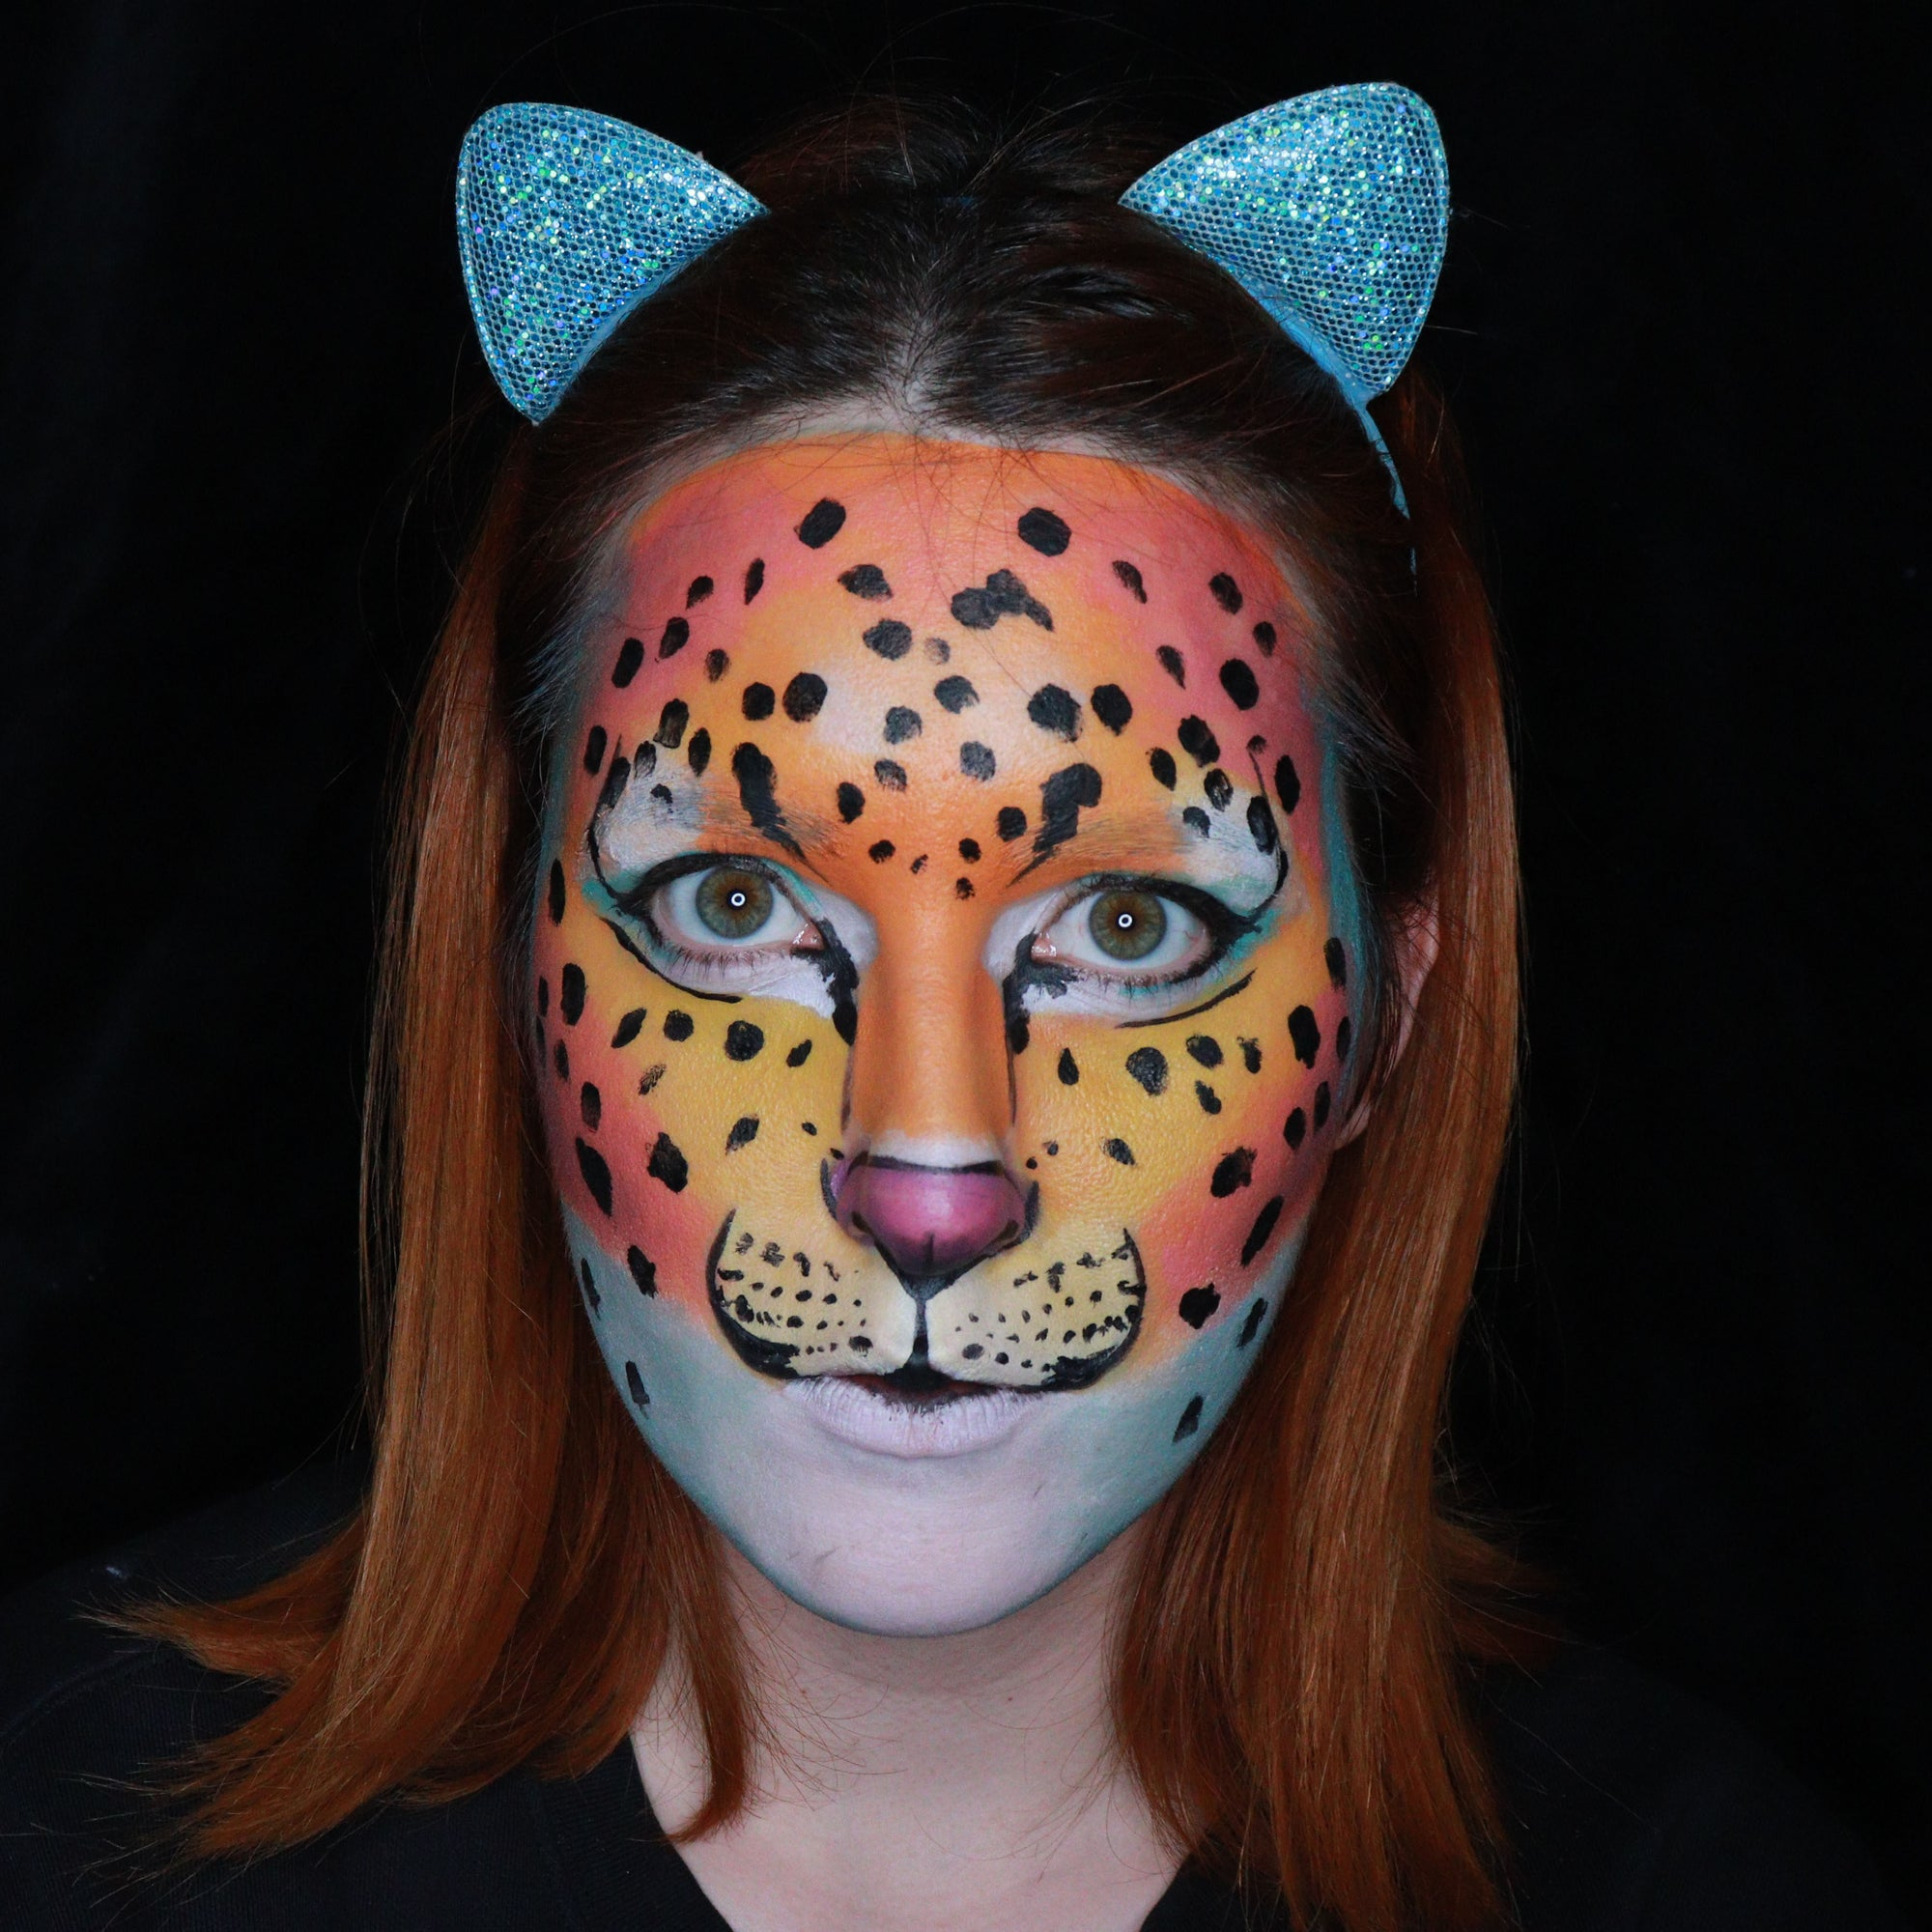 Leopard Face Paint Design by Ana Cedoviste